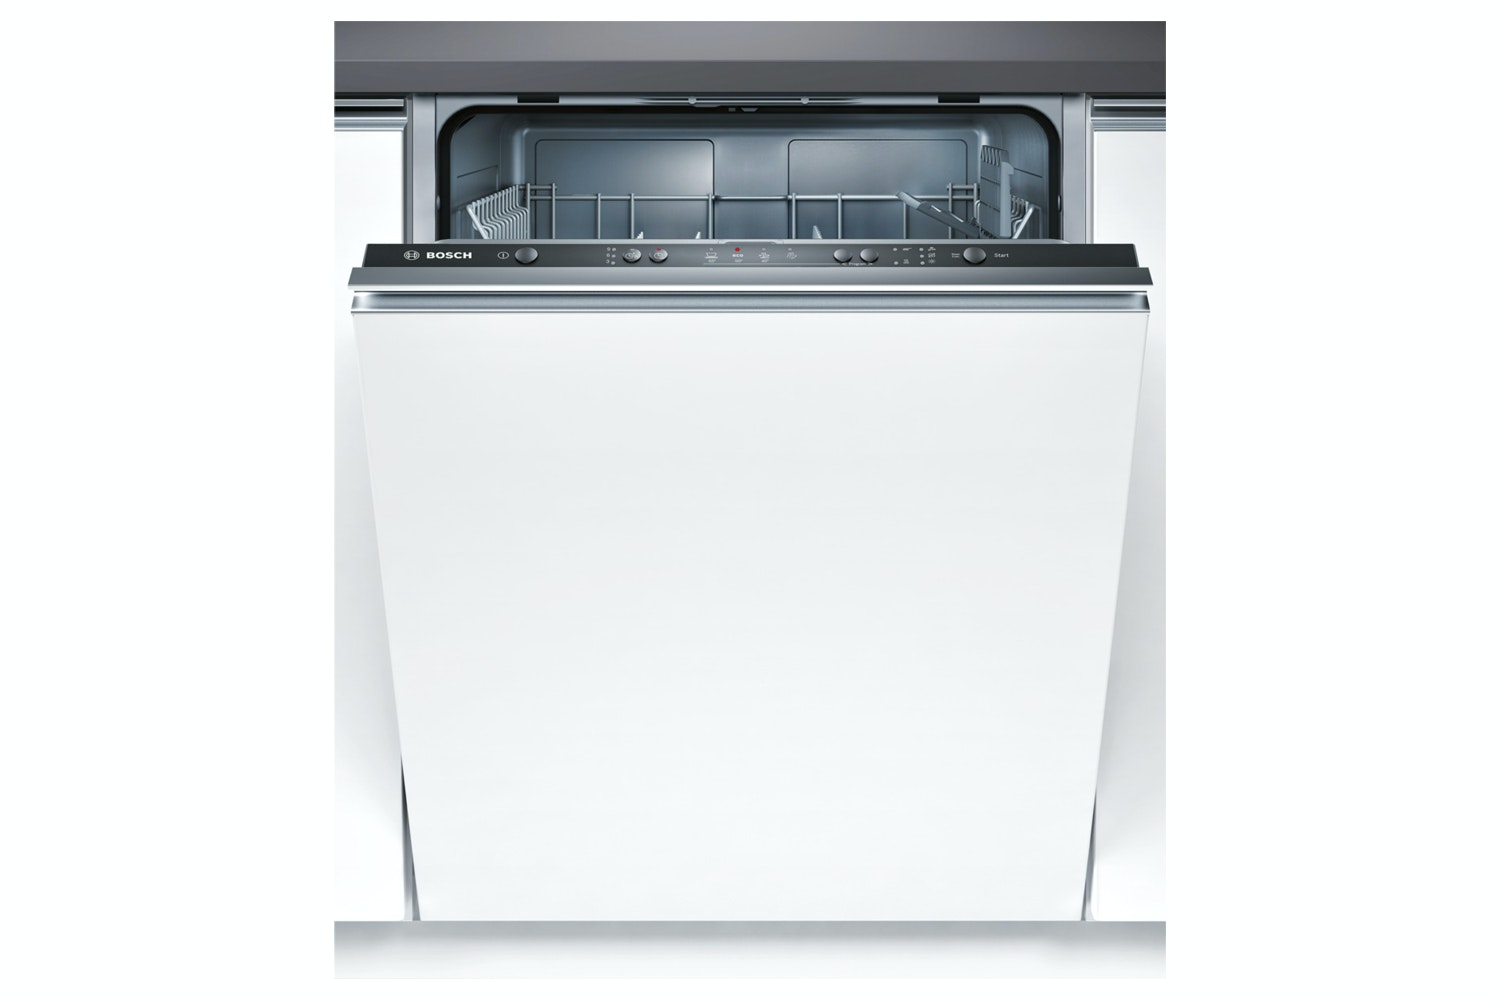 Bosch integrated dishwasher